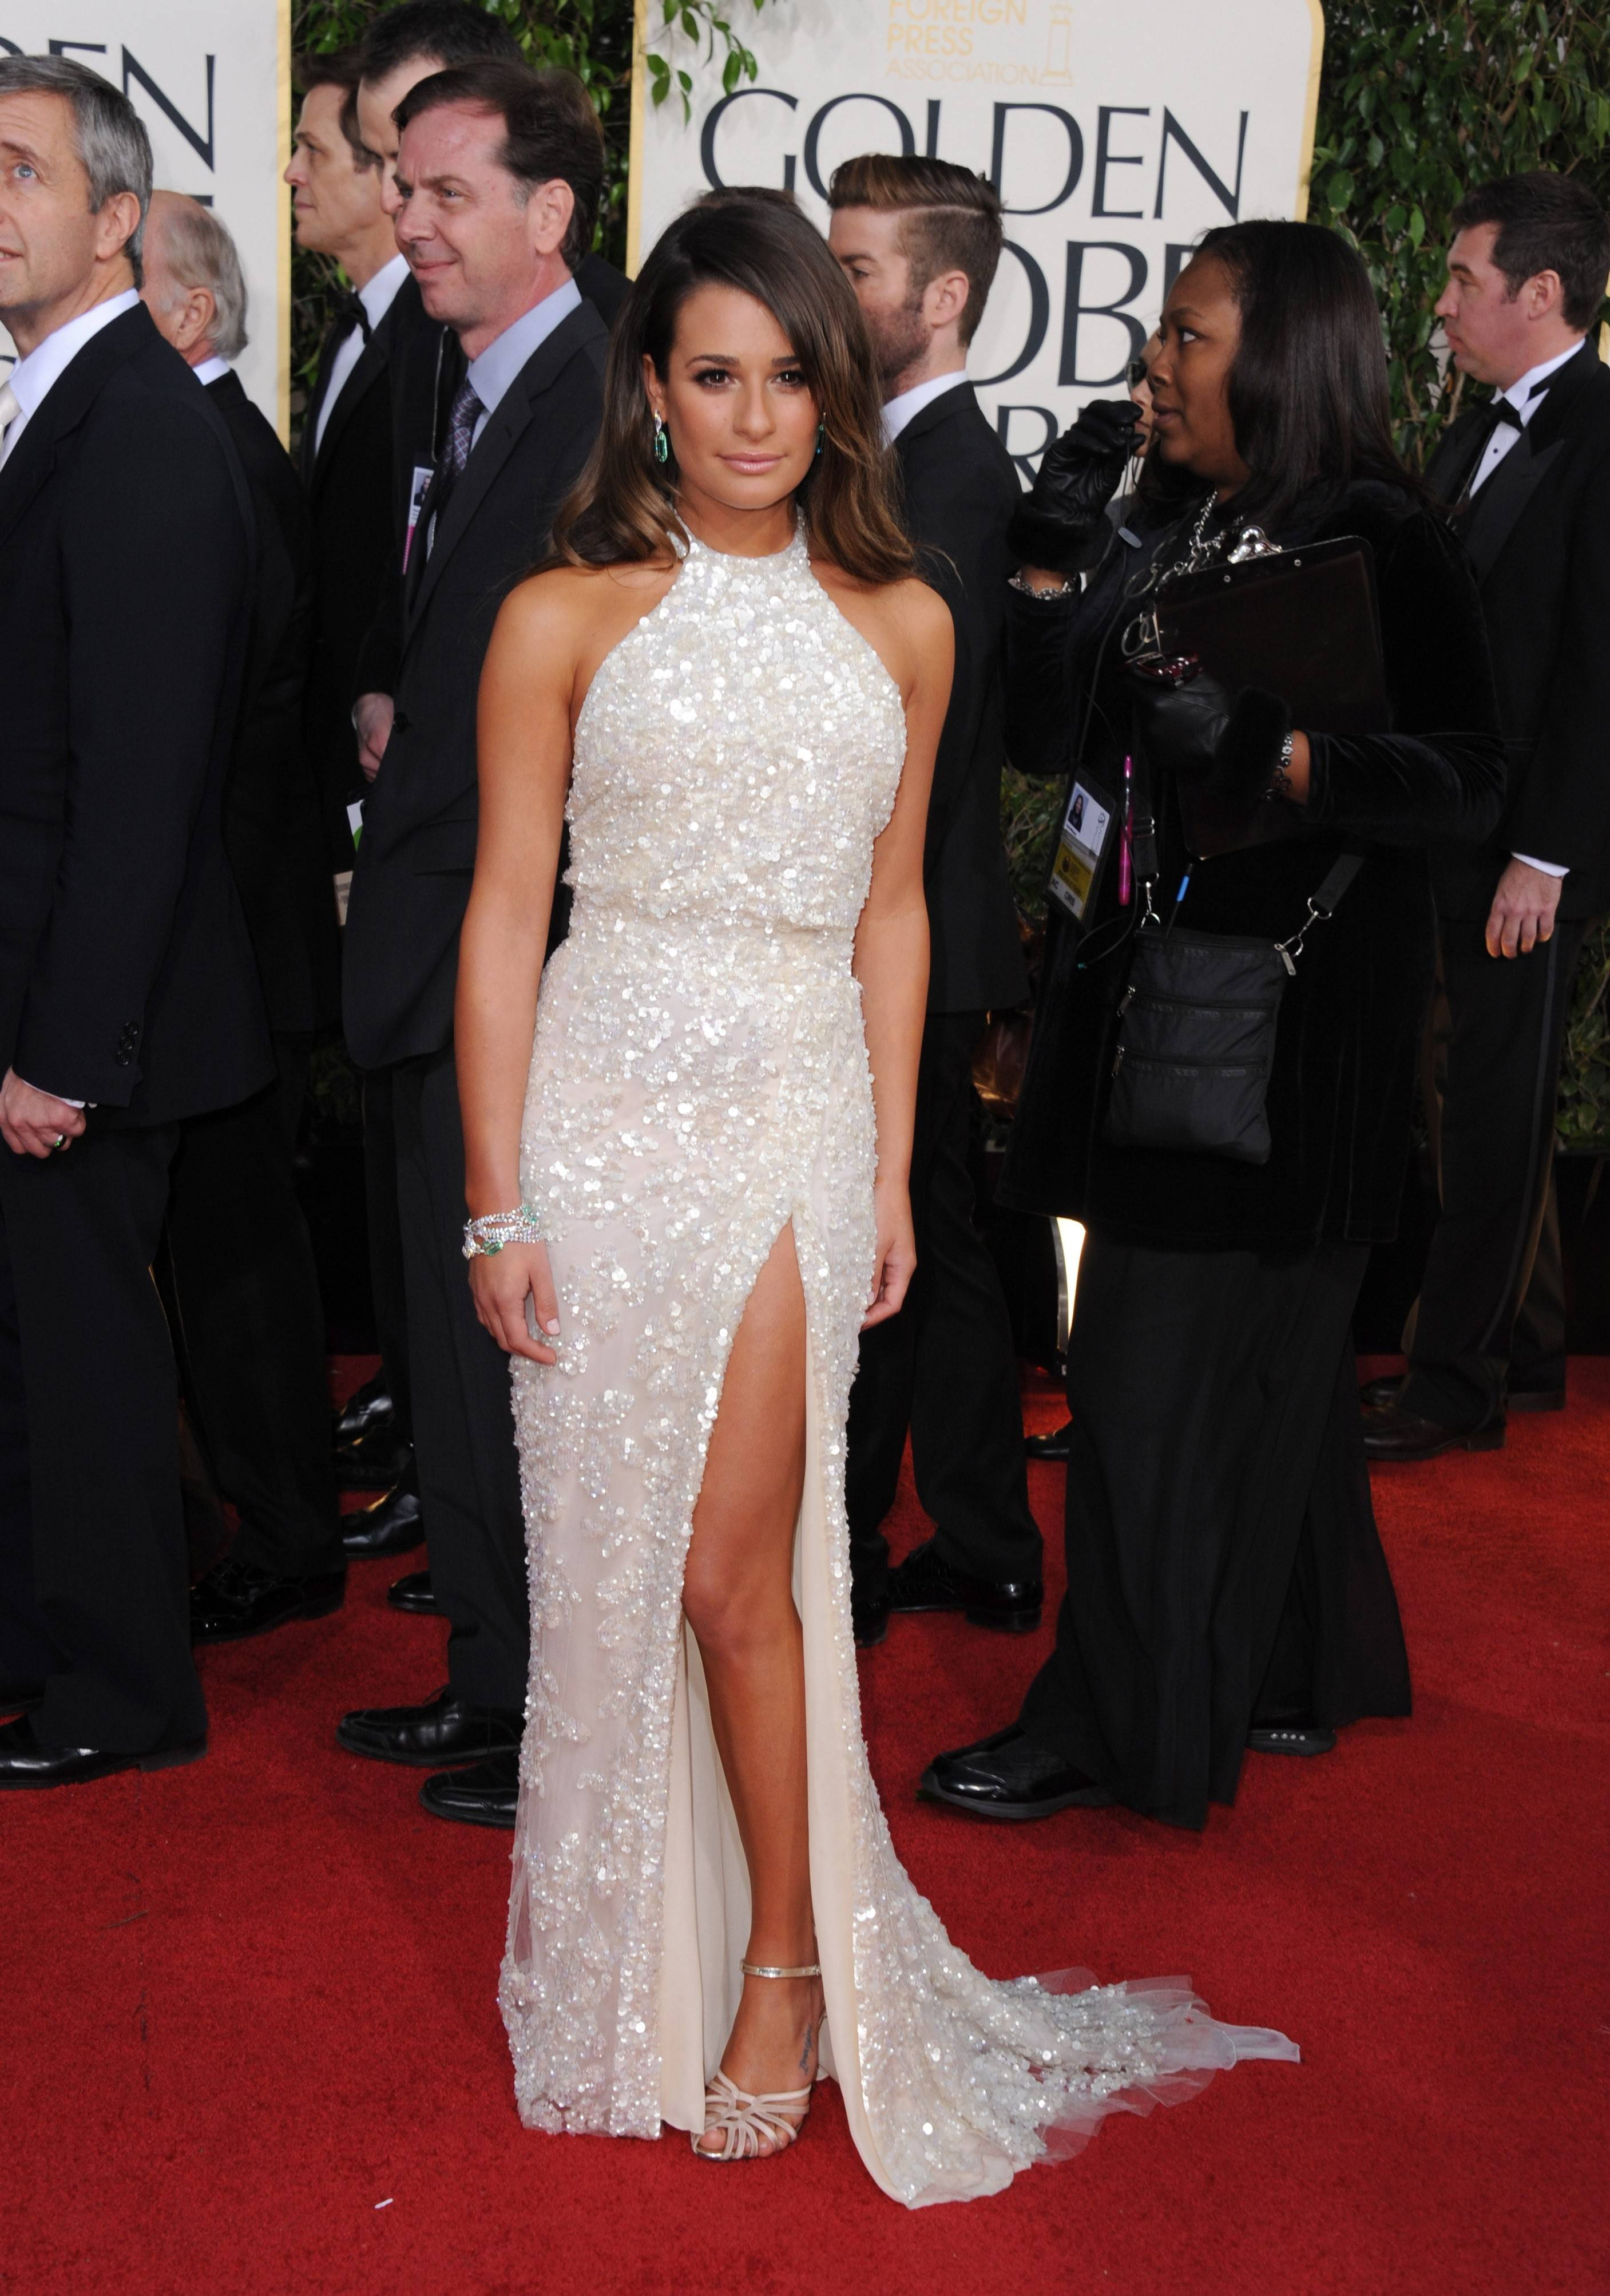 """Glee"" star Lea Michele strikes a glamorous pose before the start of the ceremony."